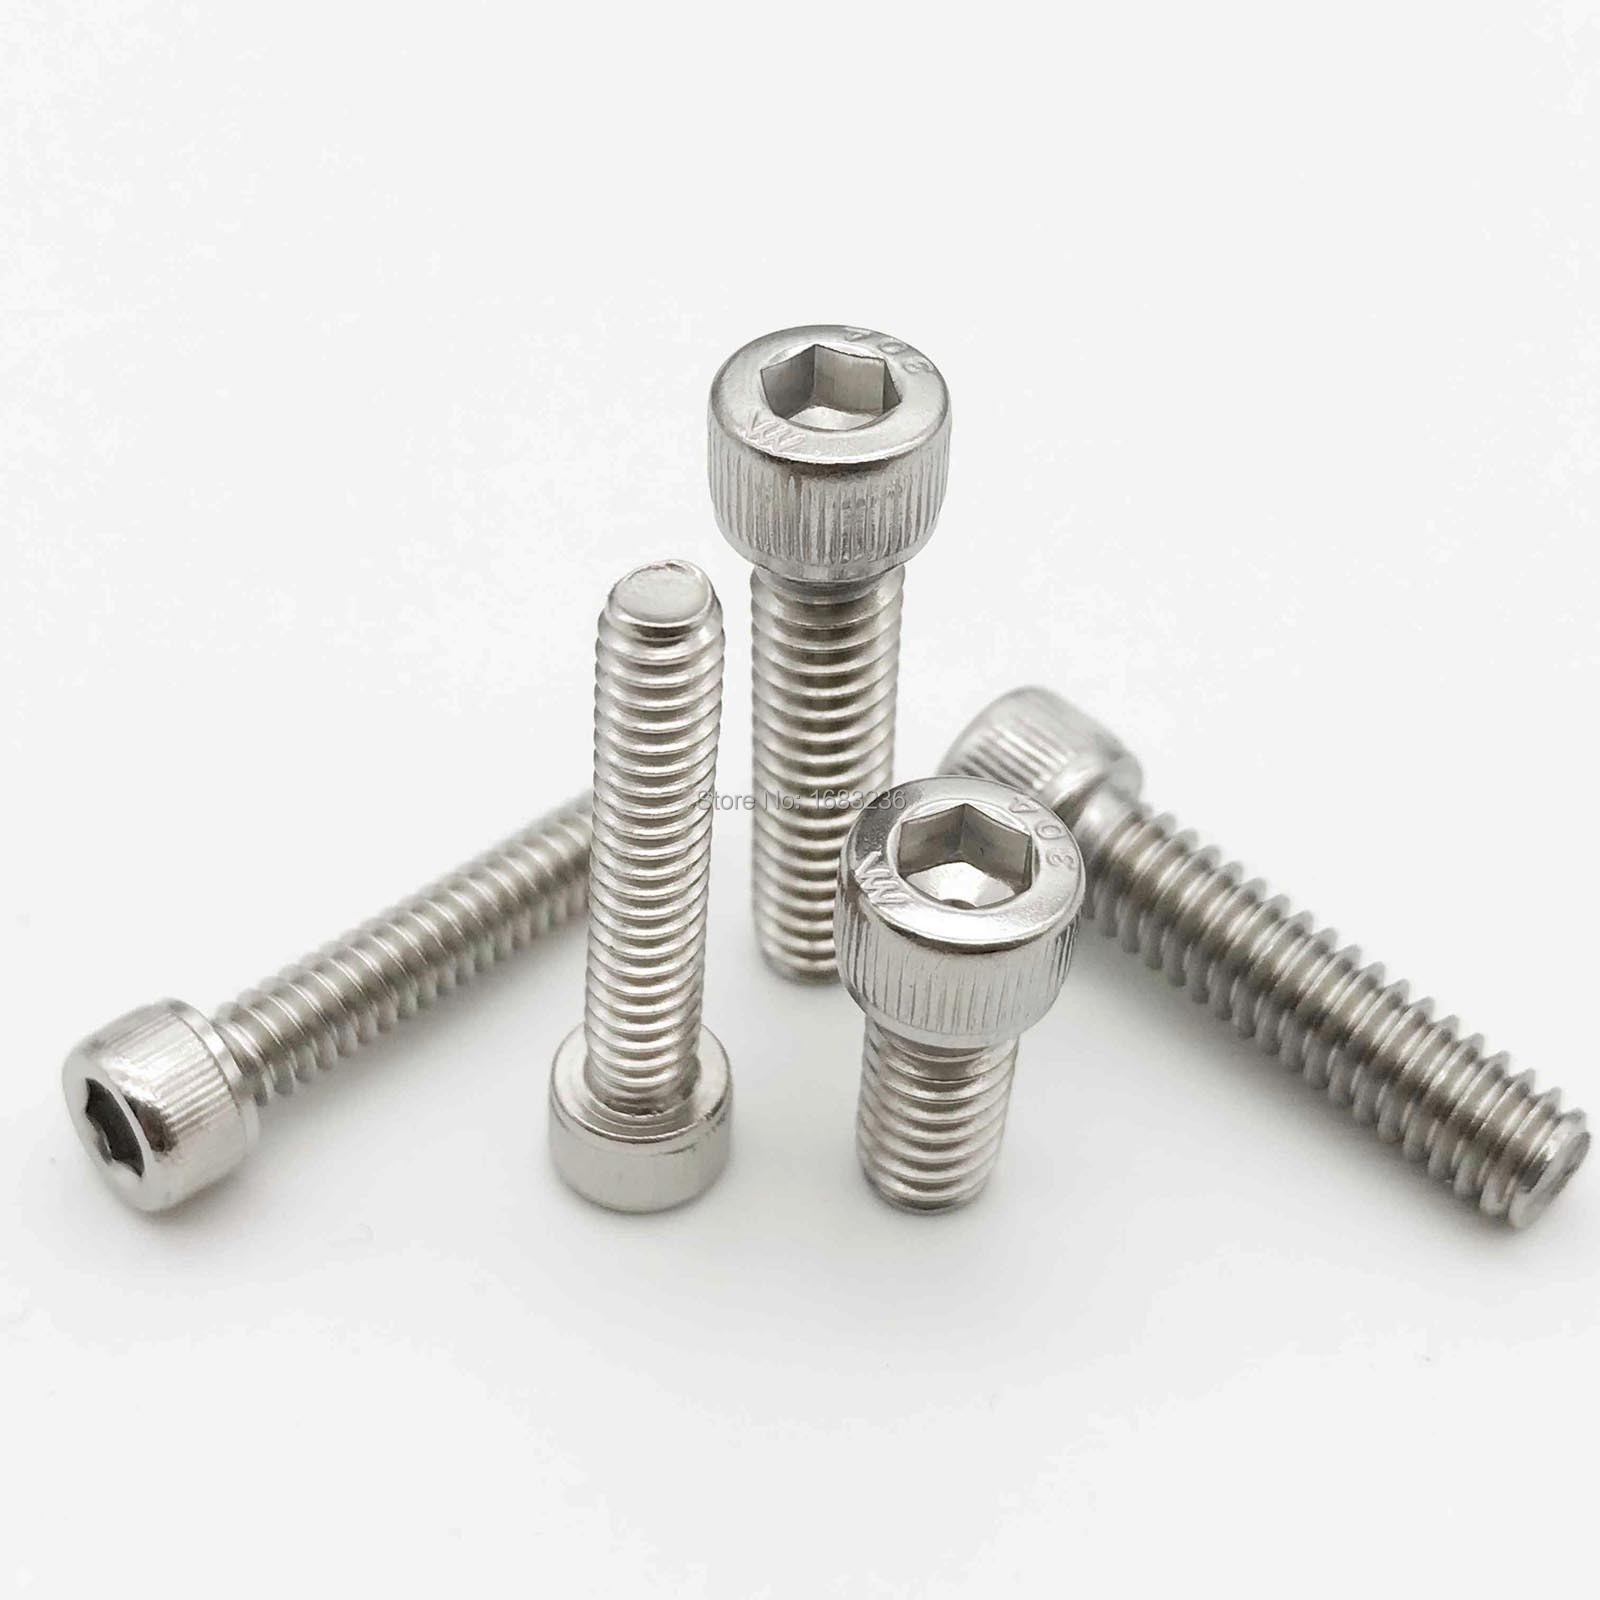 "1//4-20 X 1-1//2/"" Stainless steel socket allen head knurled bolts 10Pcs"